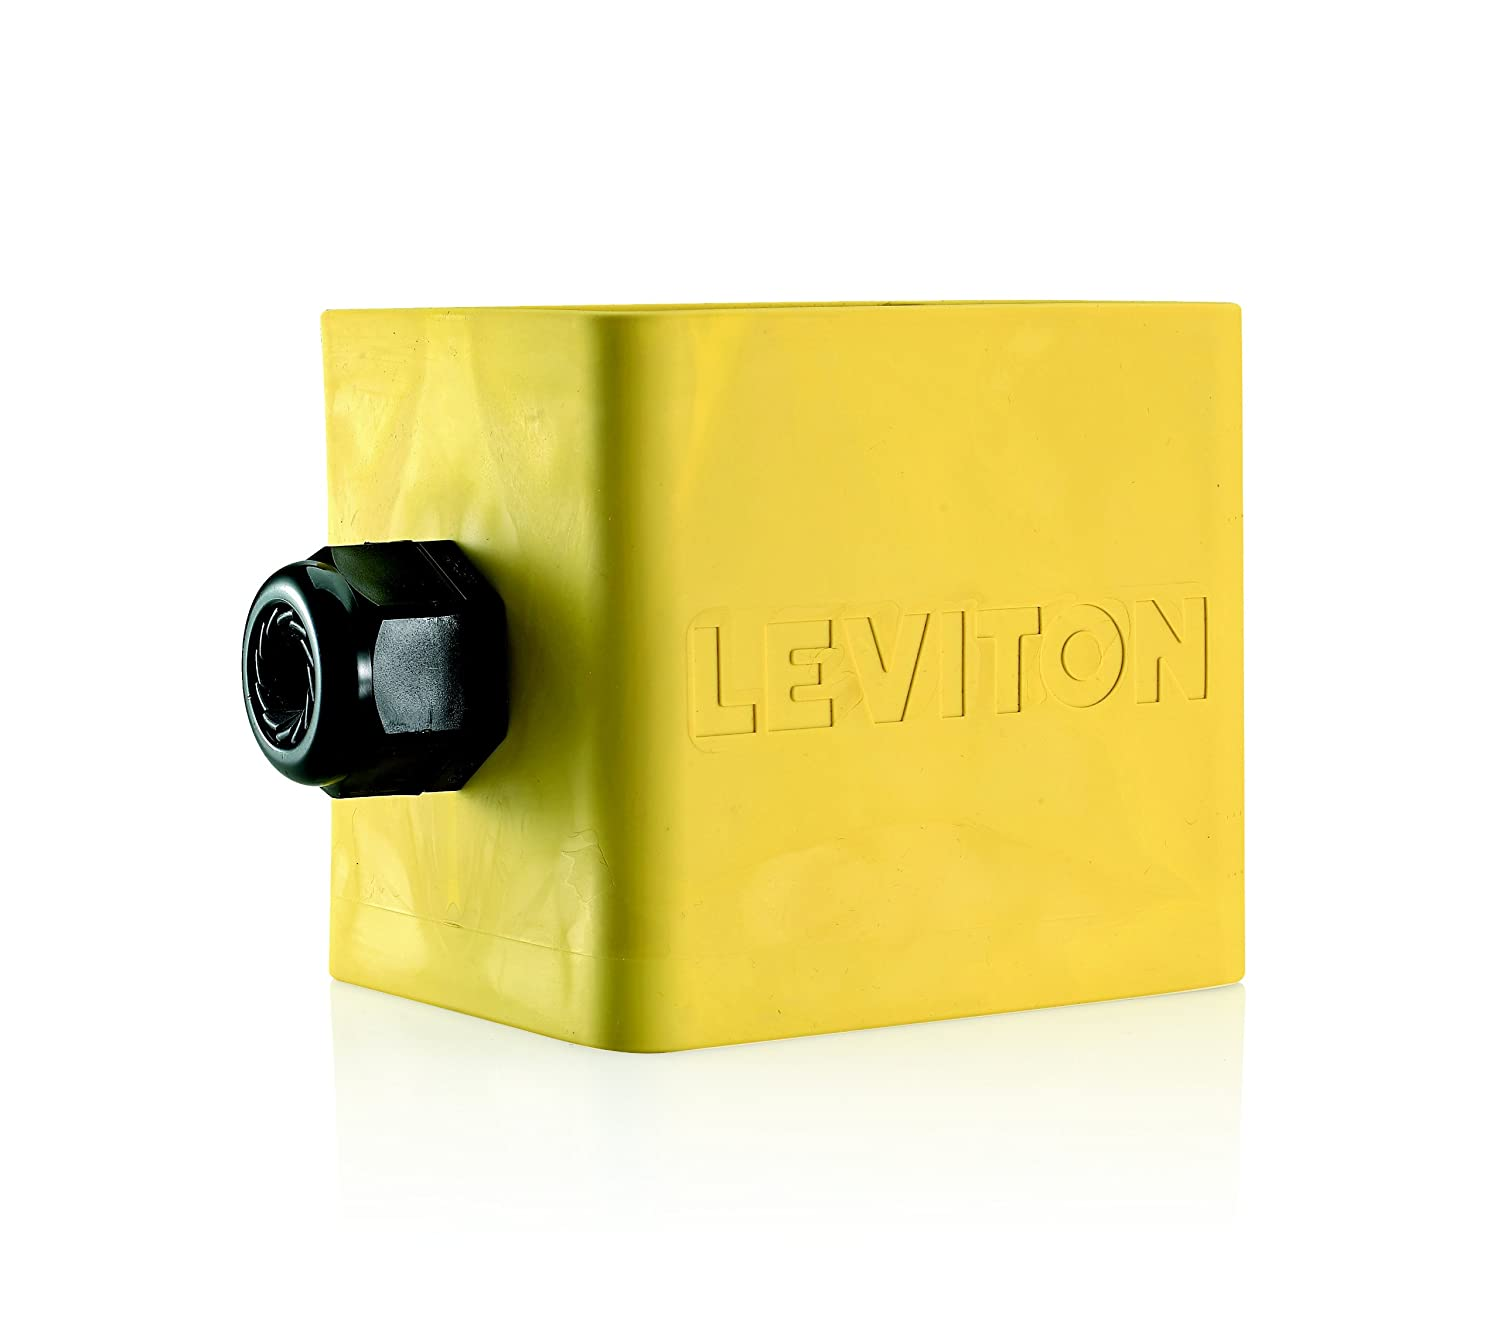 Leviton 3200 2Y Portable Outlet Box Two Gang Standard Depth Pendant Style Cable Diameter 0.590 Inch 1.000 Inch Yellow